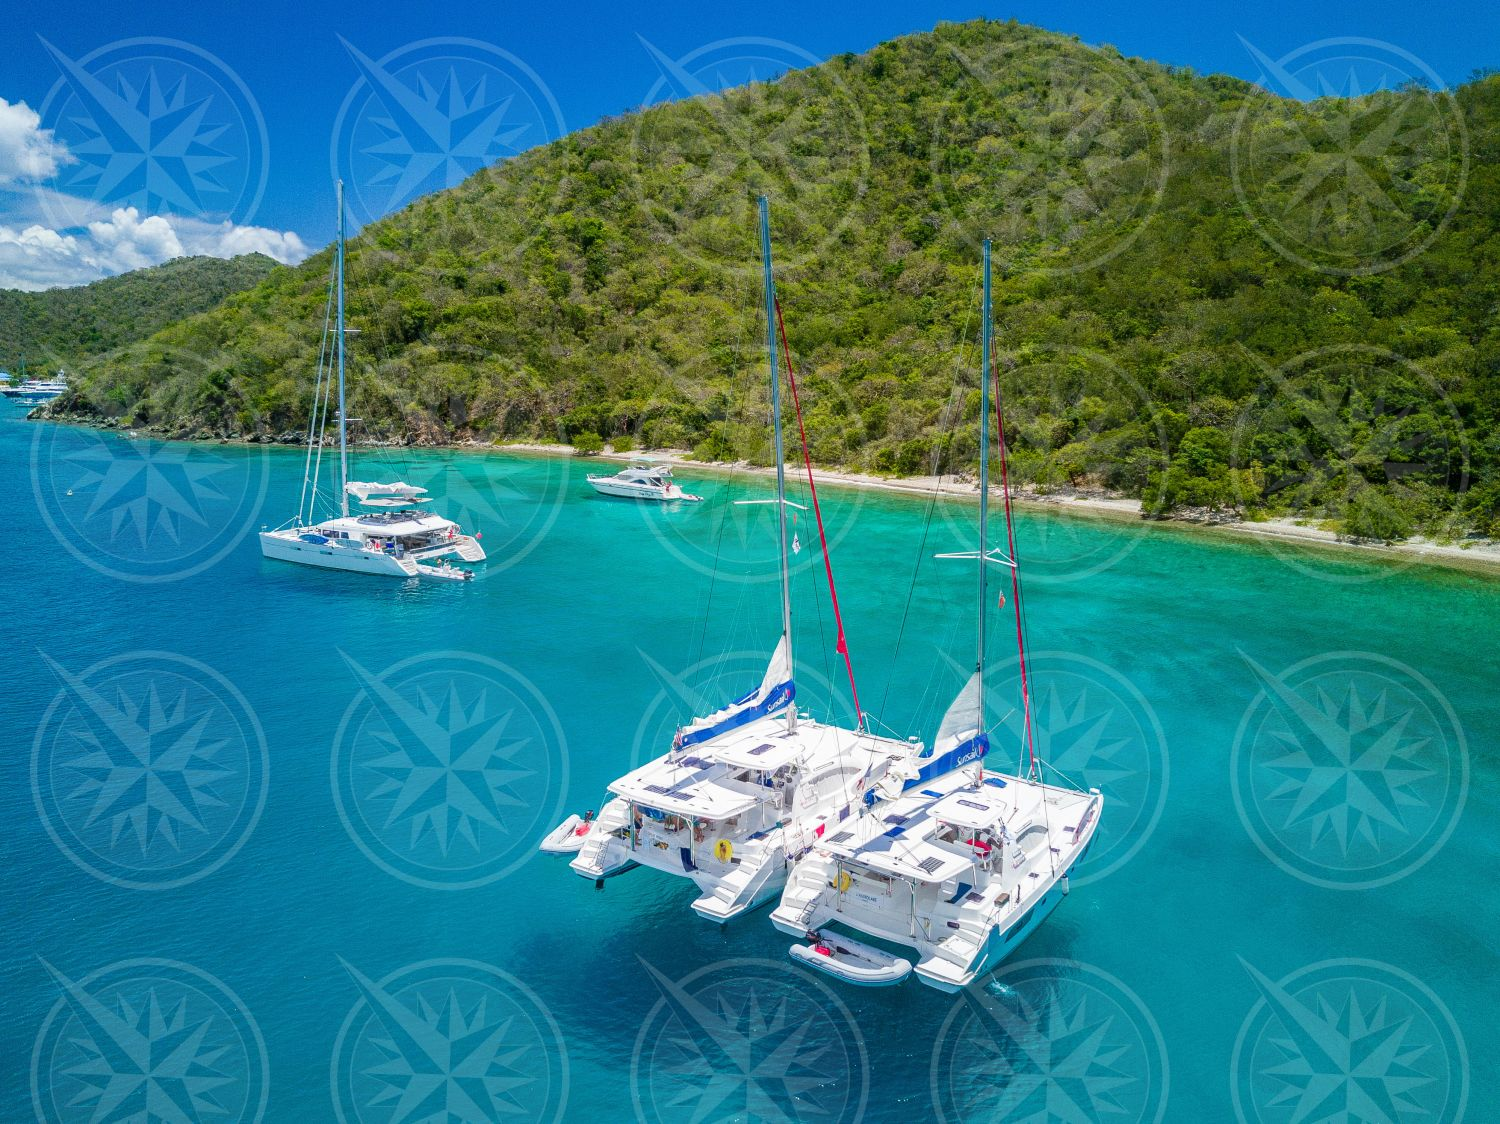 Rafted yachts